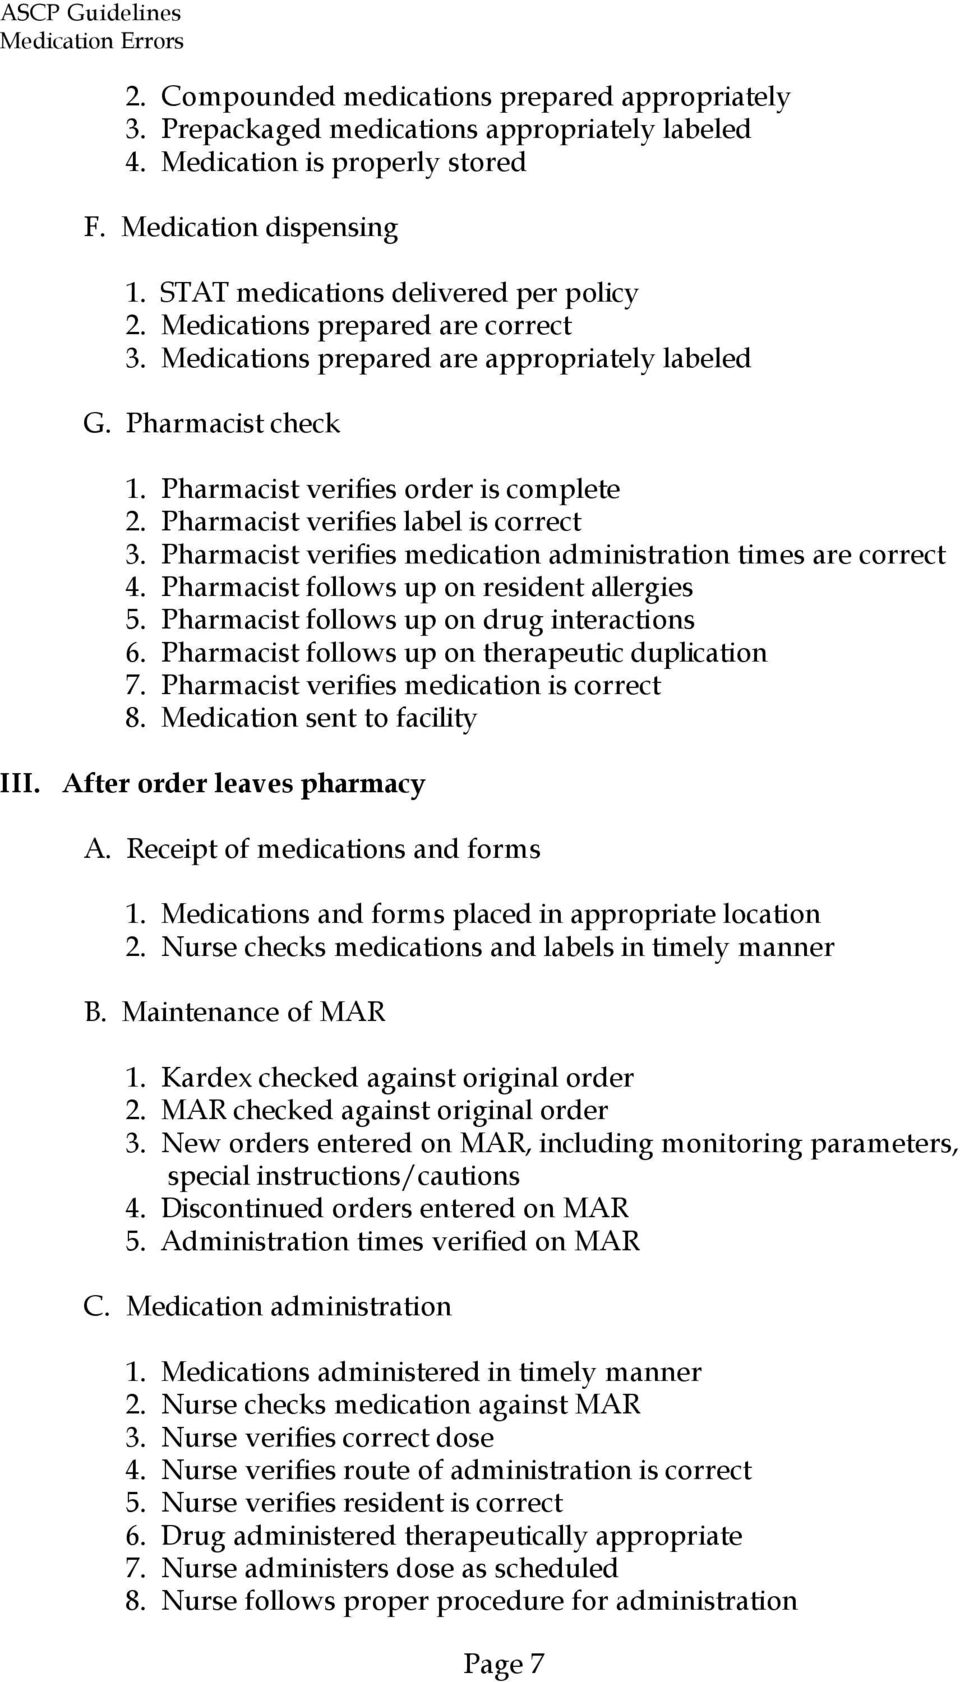 Pharmacist verifies medication administration times are correct 4. Pharmacist follows up on resident allergies 5. Pharmacist follows up on drug interactions 6.